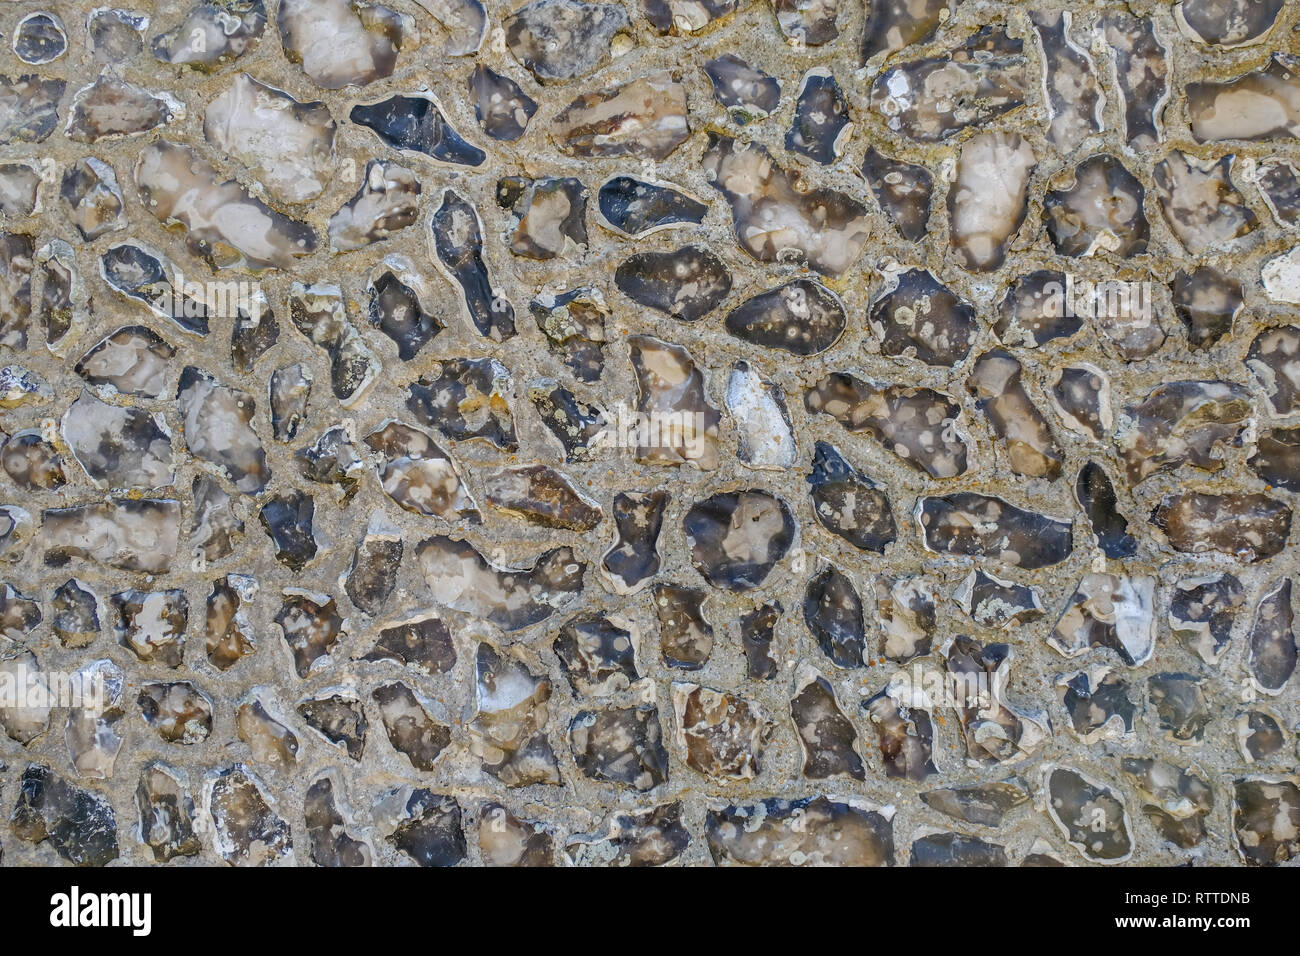 Closeup of flint wall, typical style found in Sussex. Large stones with mortar which makes an interesting background or graphic resource. - Stock Image